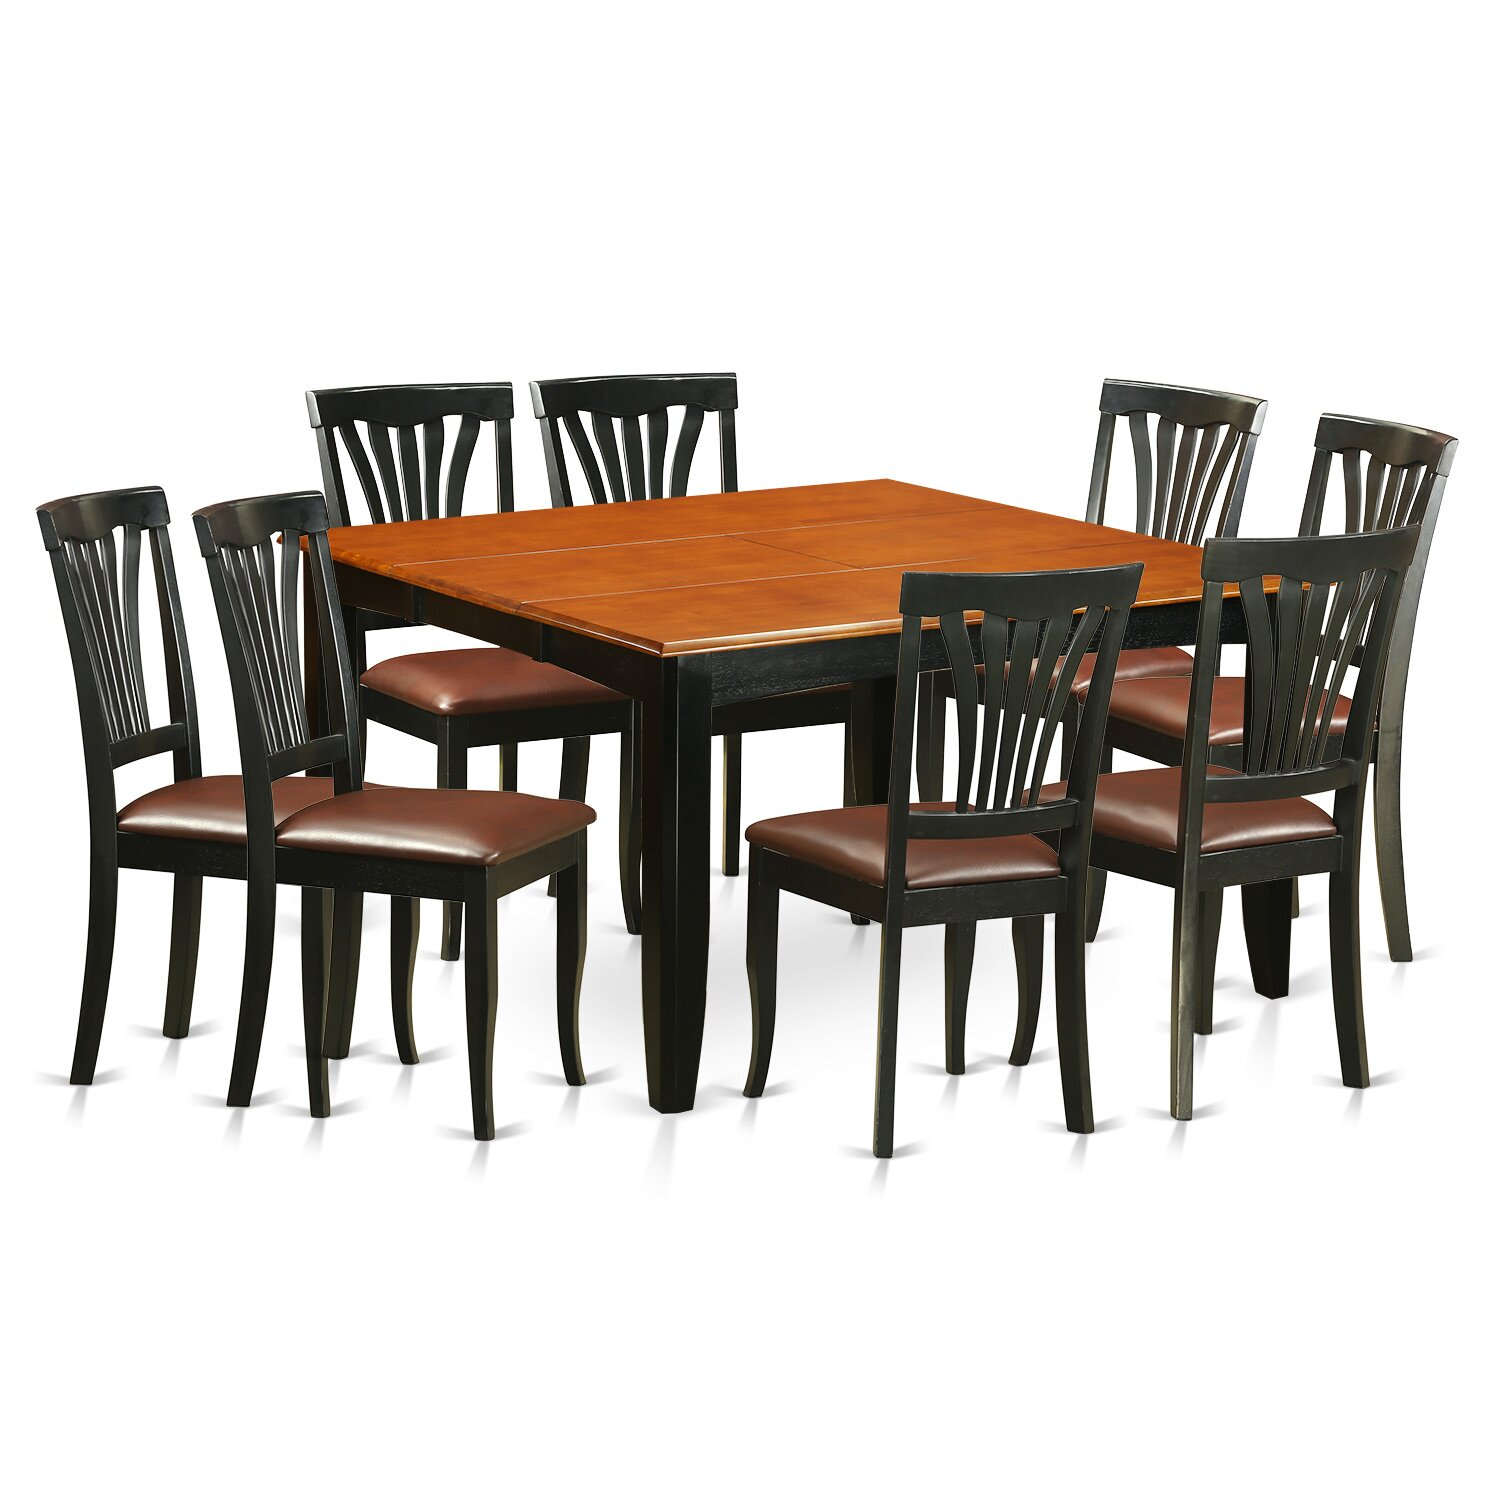 9 Piece Solid Wood Dining Set With Table And 8 Chairs: Parfait 9 Piece Dining Set